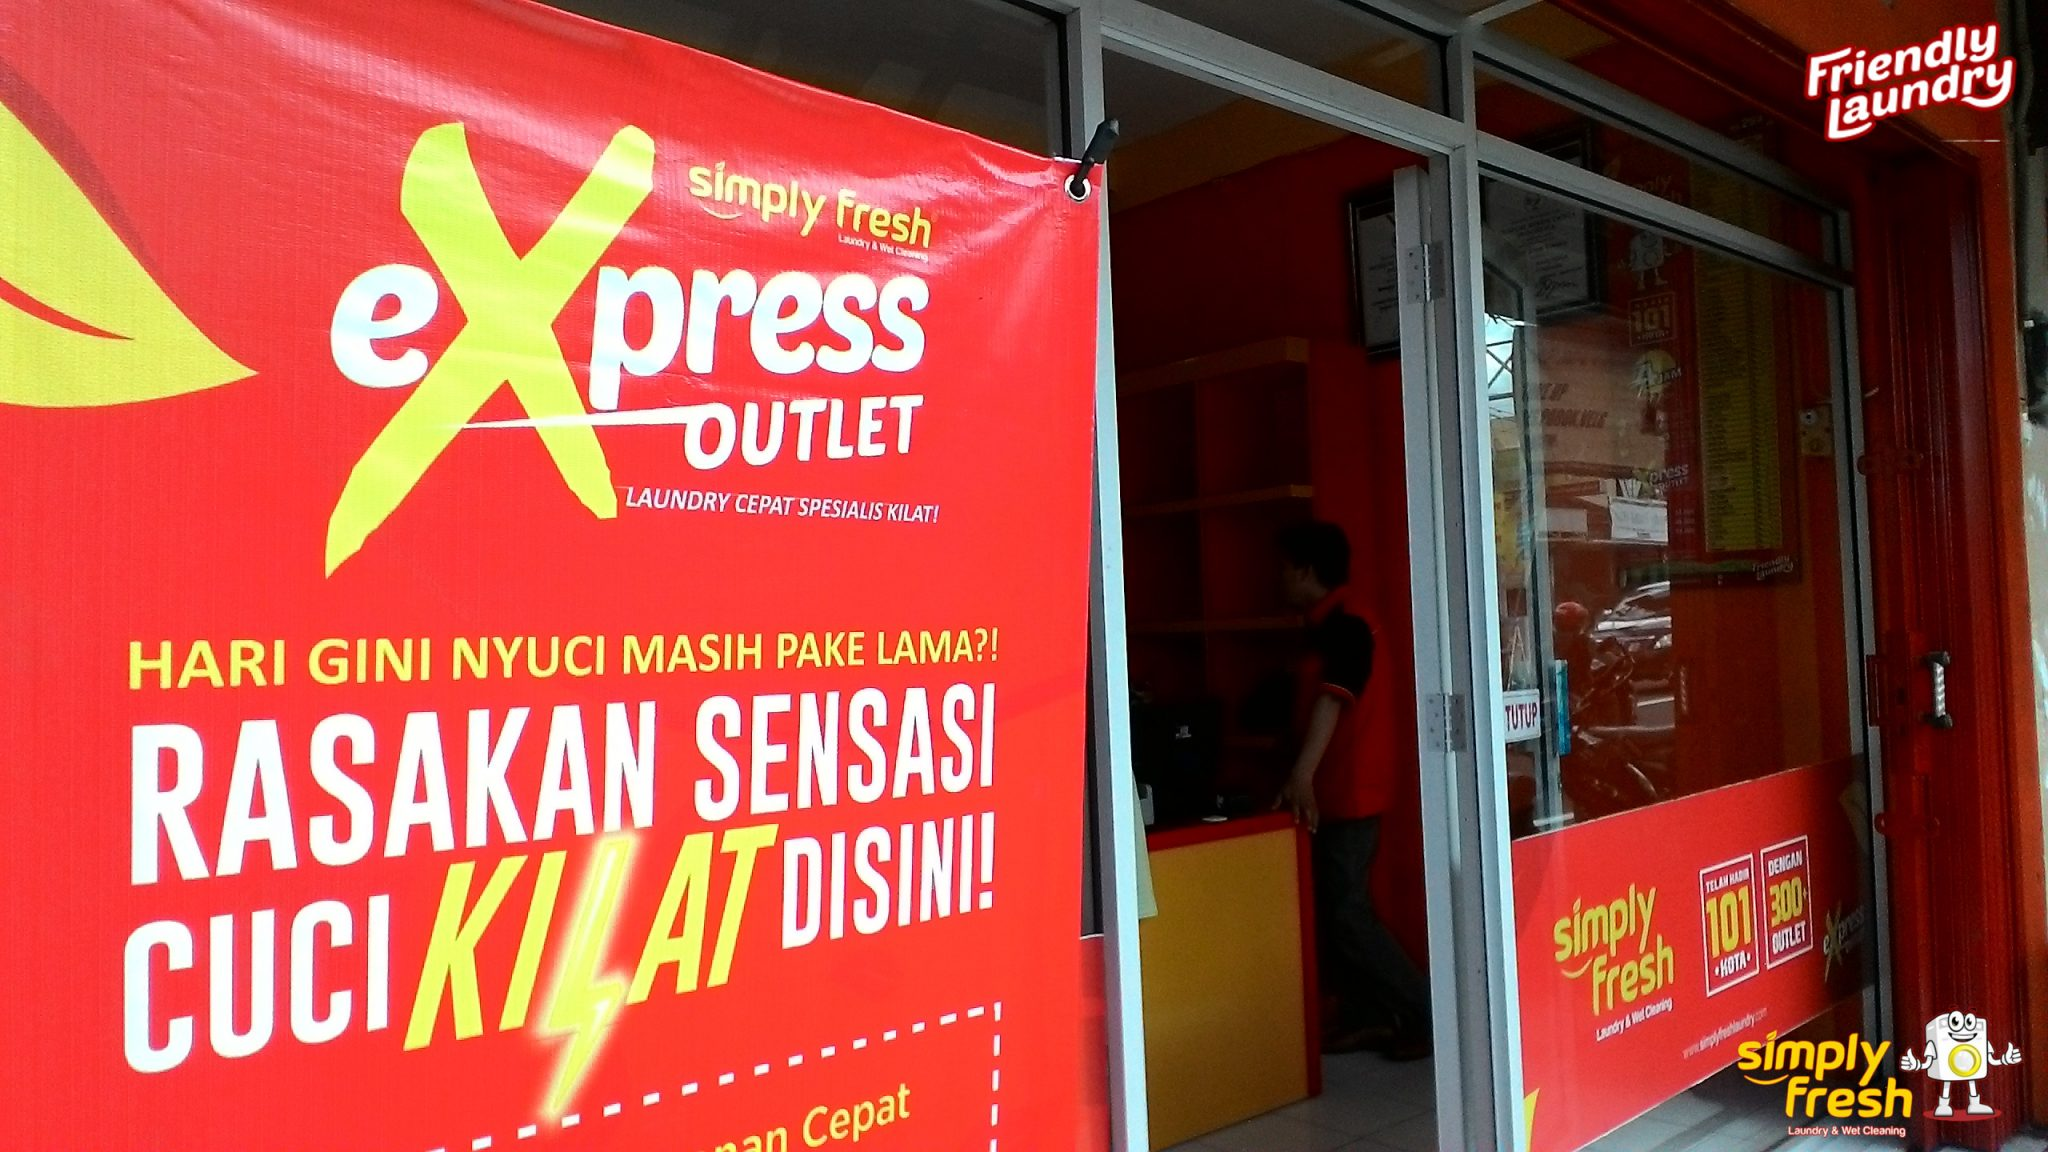 Simply Fresh Laundry Express Outlet 294 Yogyakarta